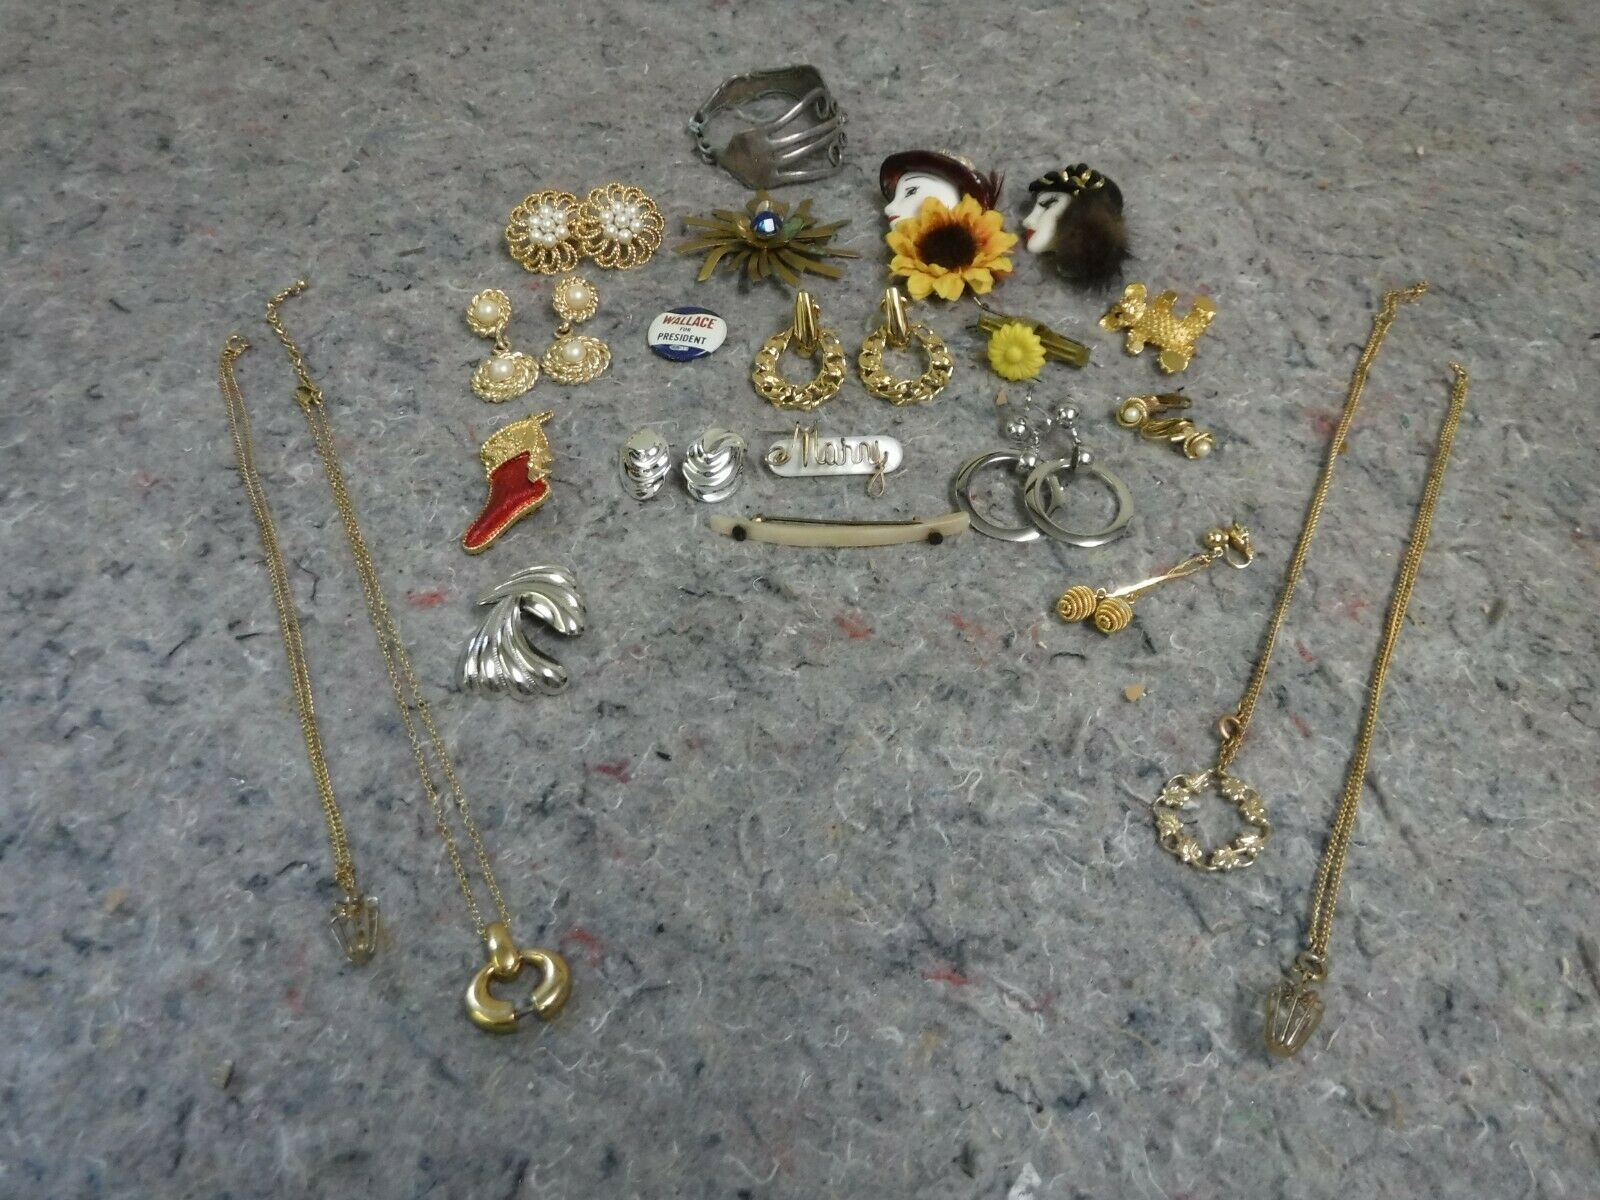 Lot of Mixed Costume Jewelry-Bracelet, Necklace, … - image 1